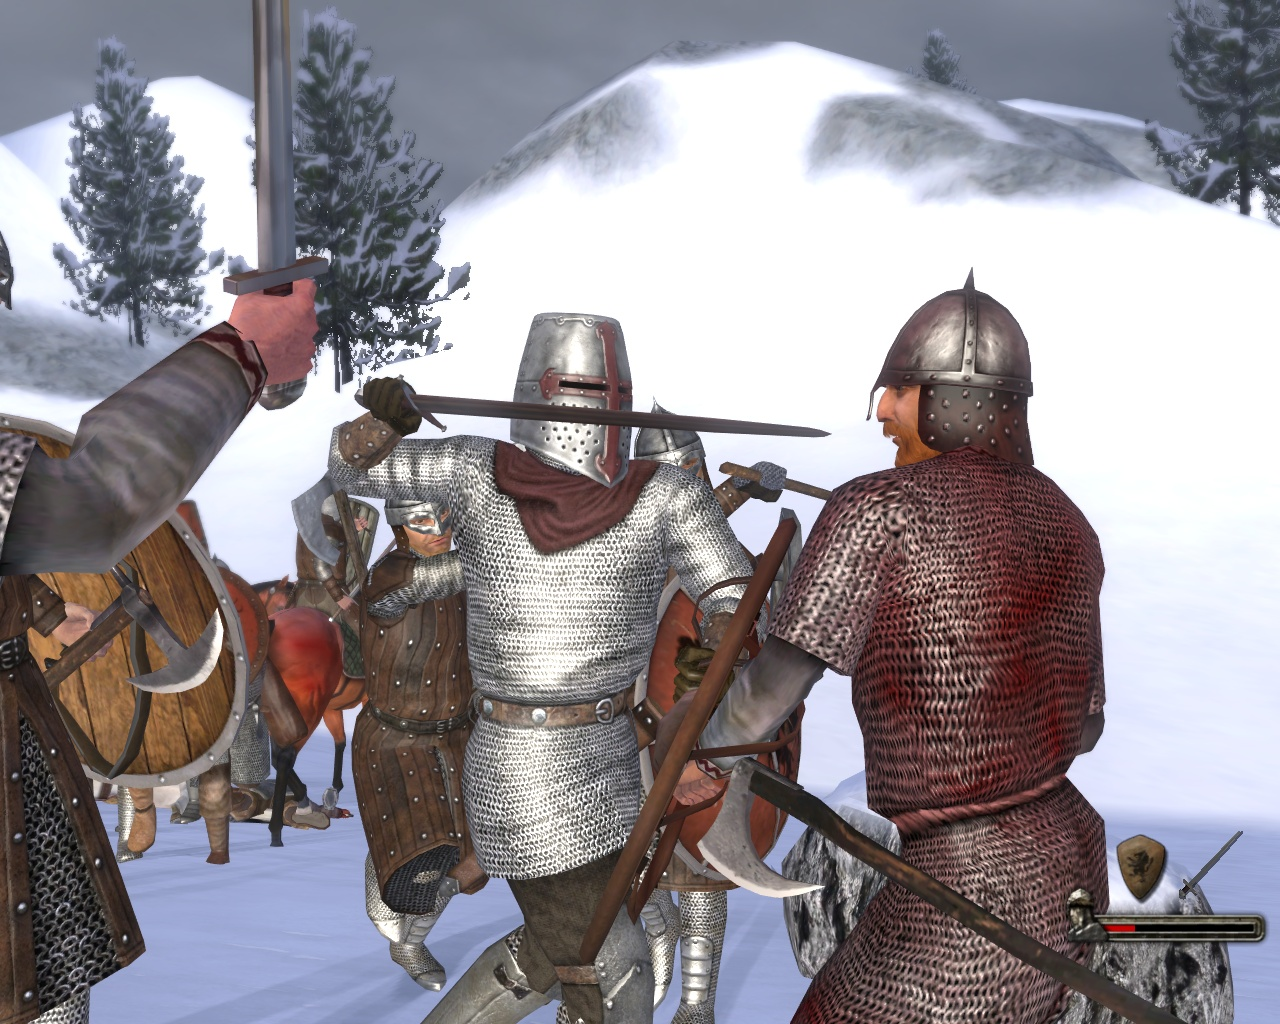 Mount And Blade Warband Strategy Games Eaglecom